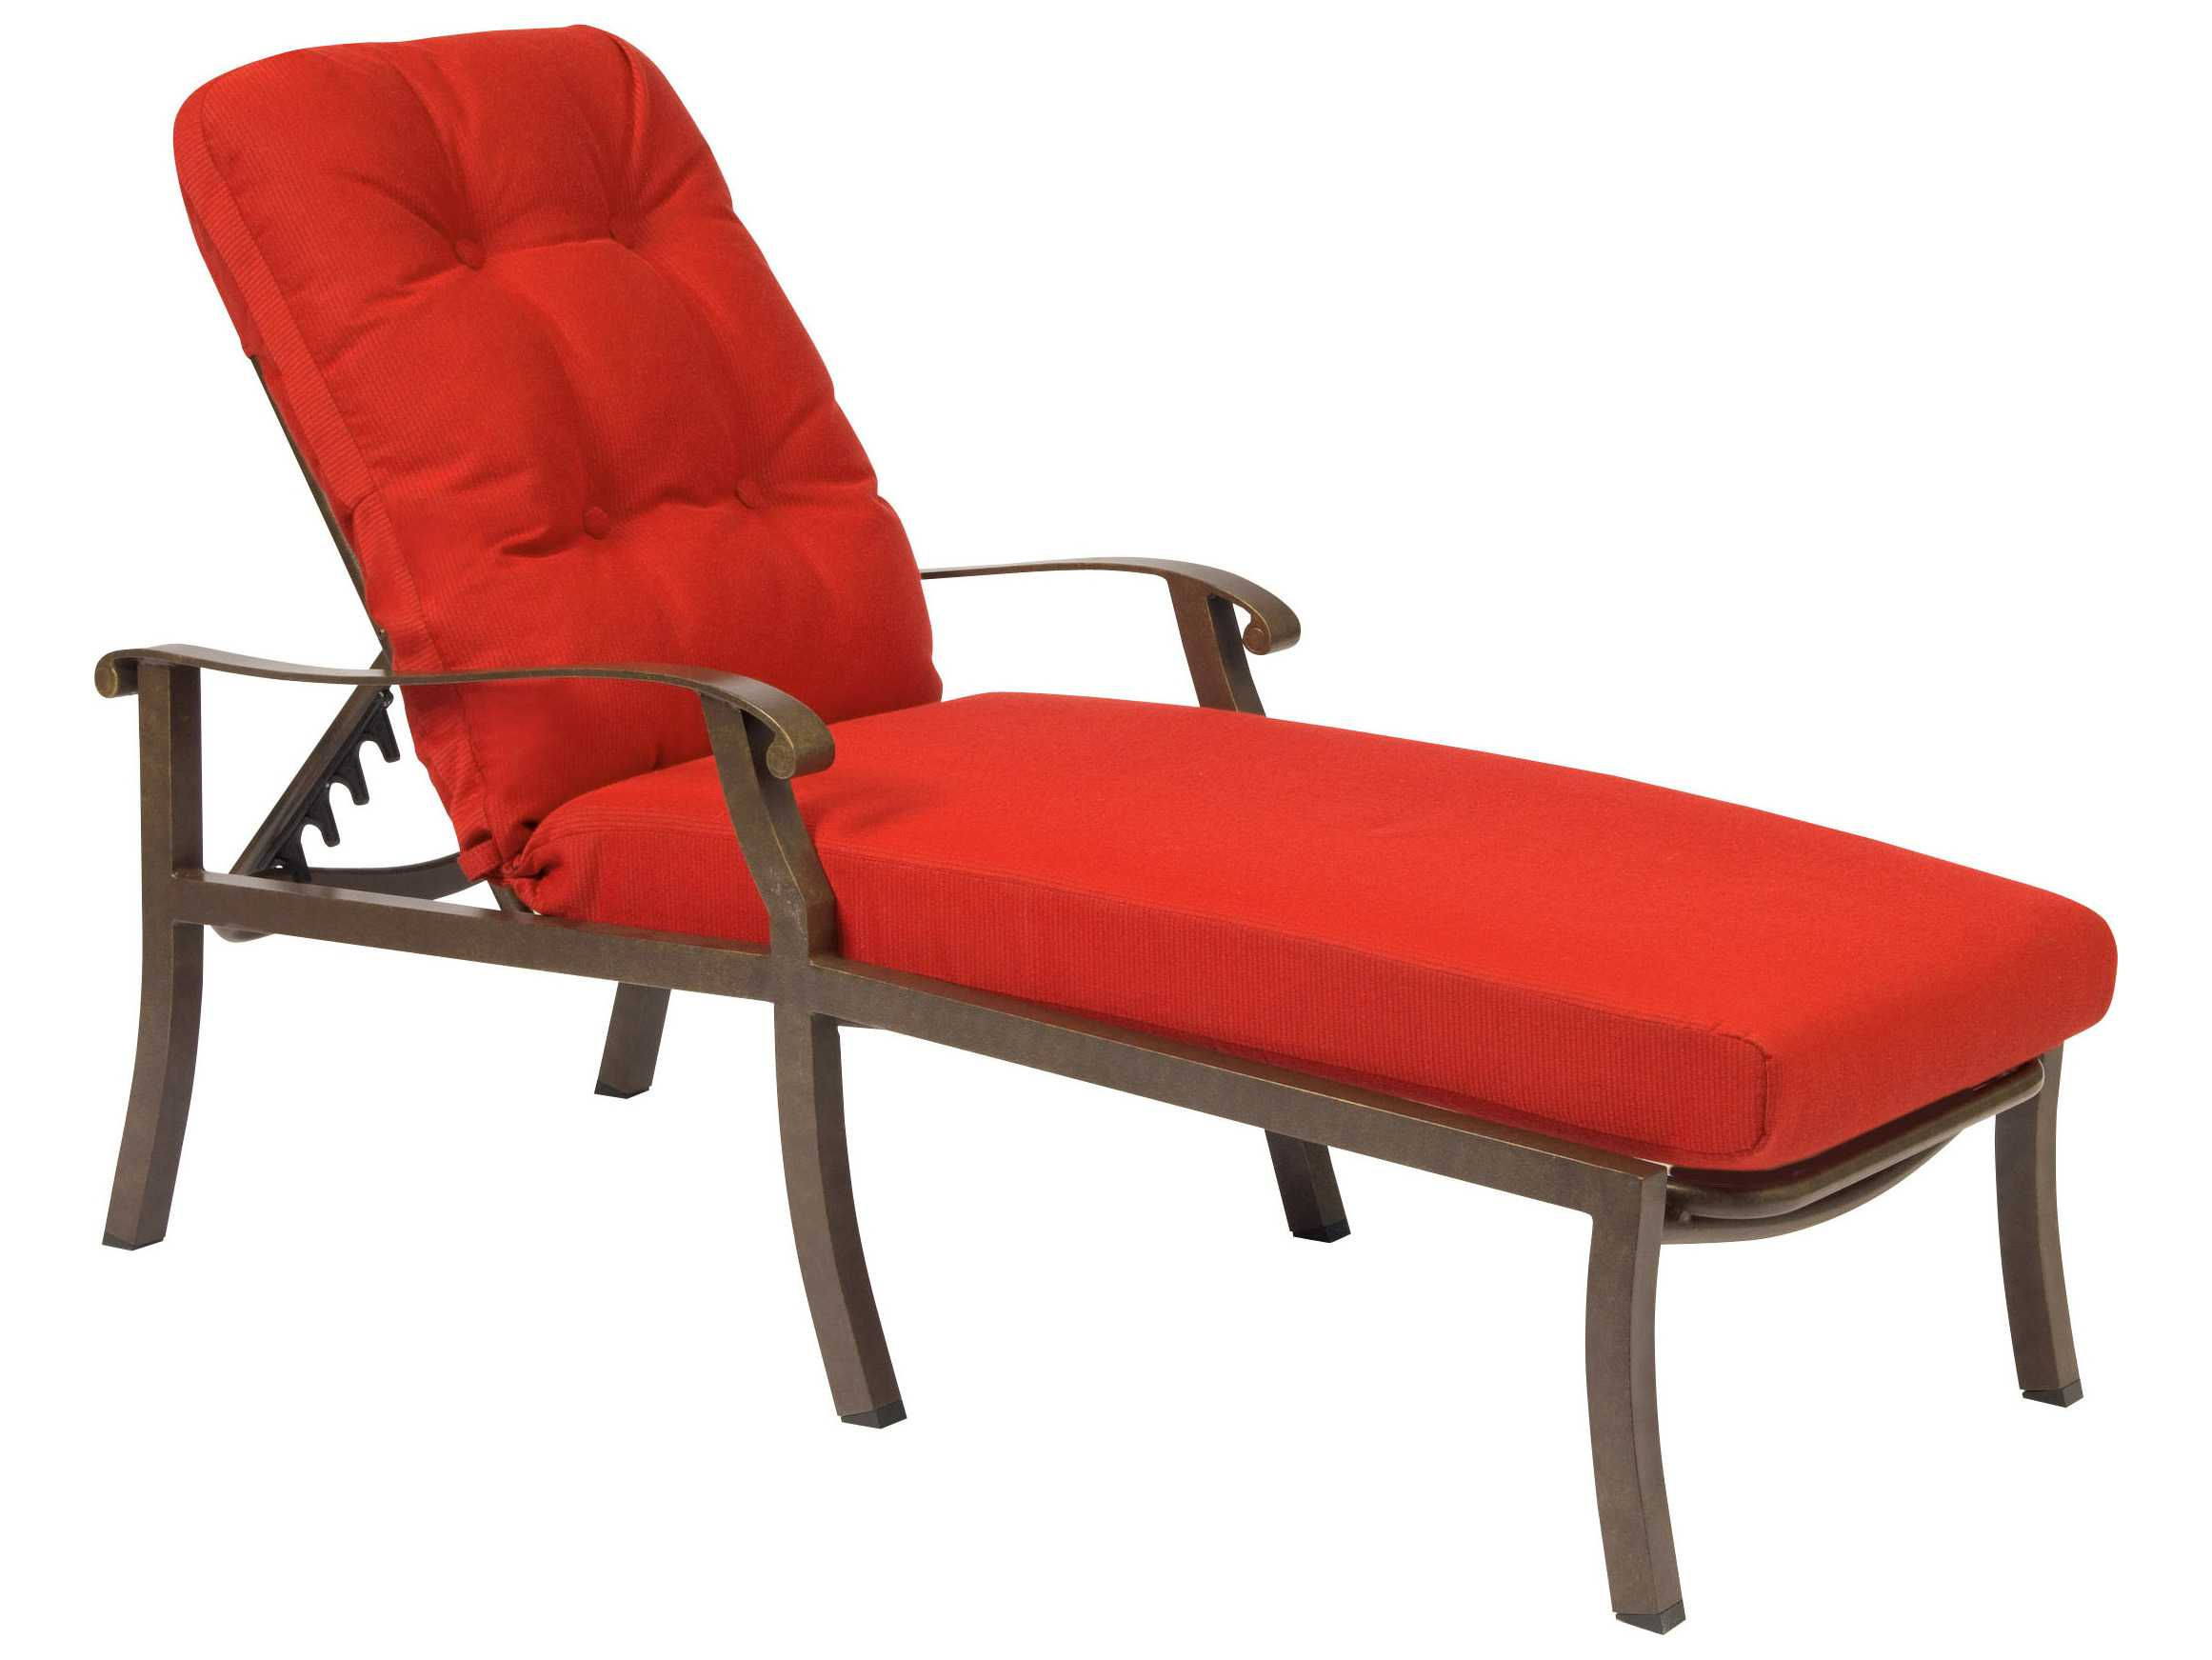 Woodard cortland cushion aluminum adjustable chaise lounge for Chaise lounge aluminum